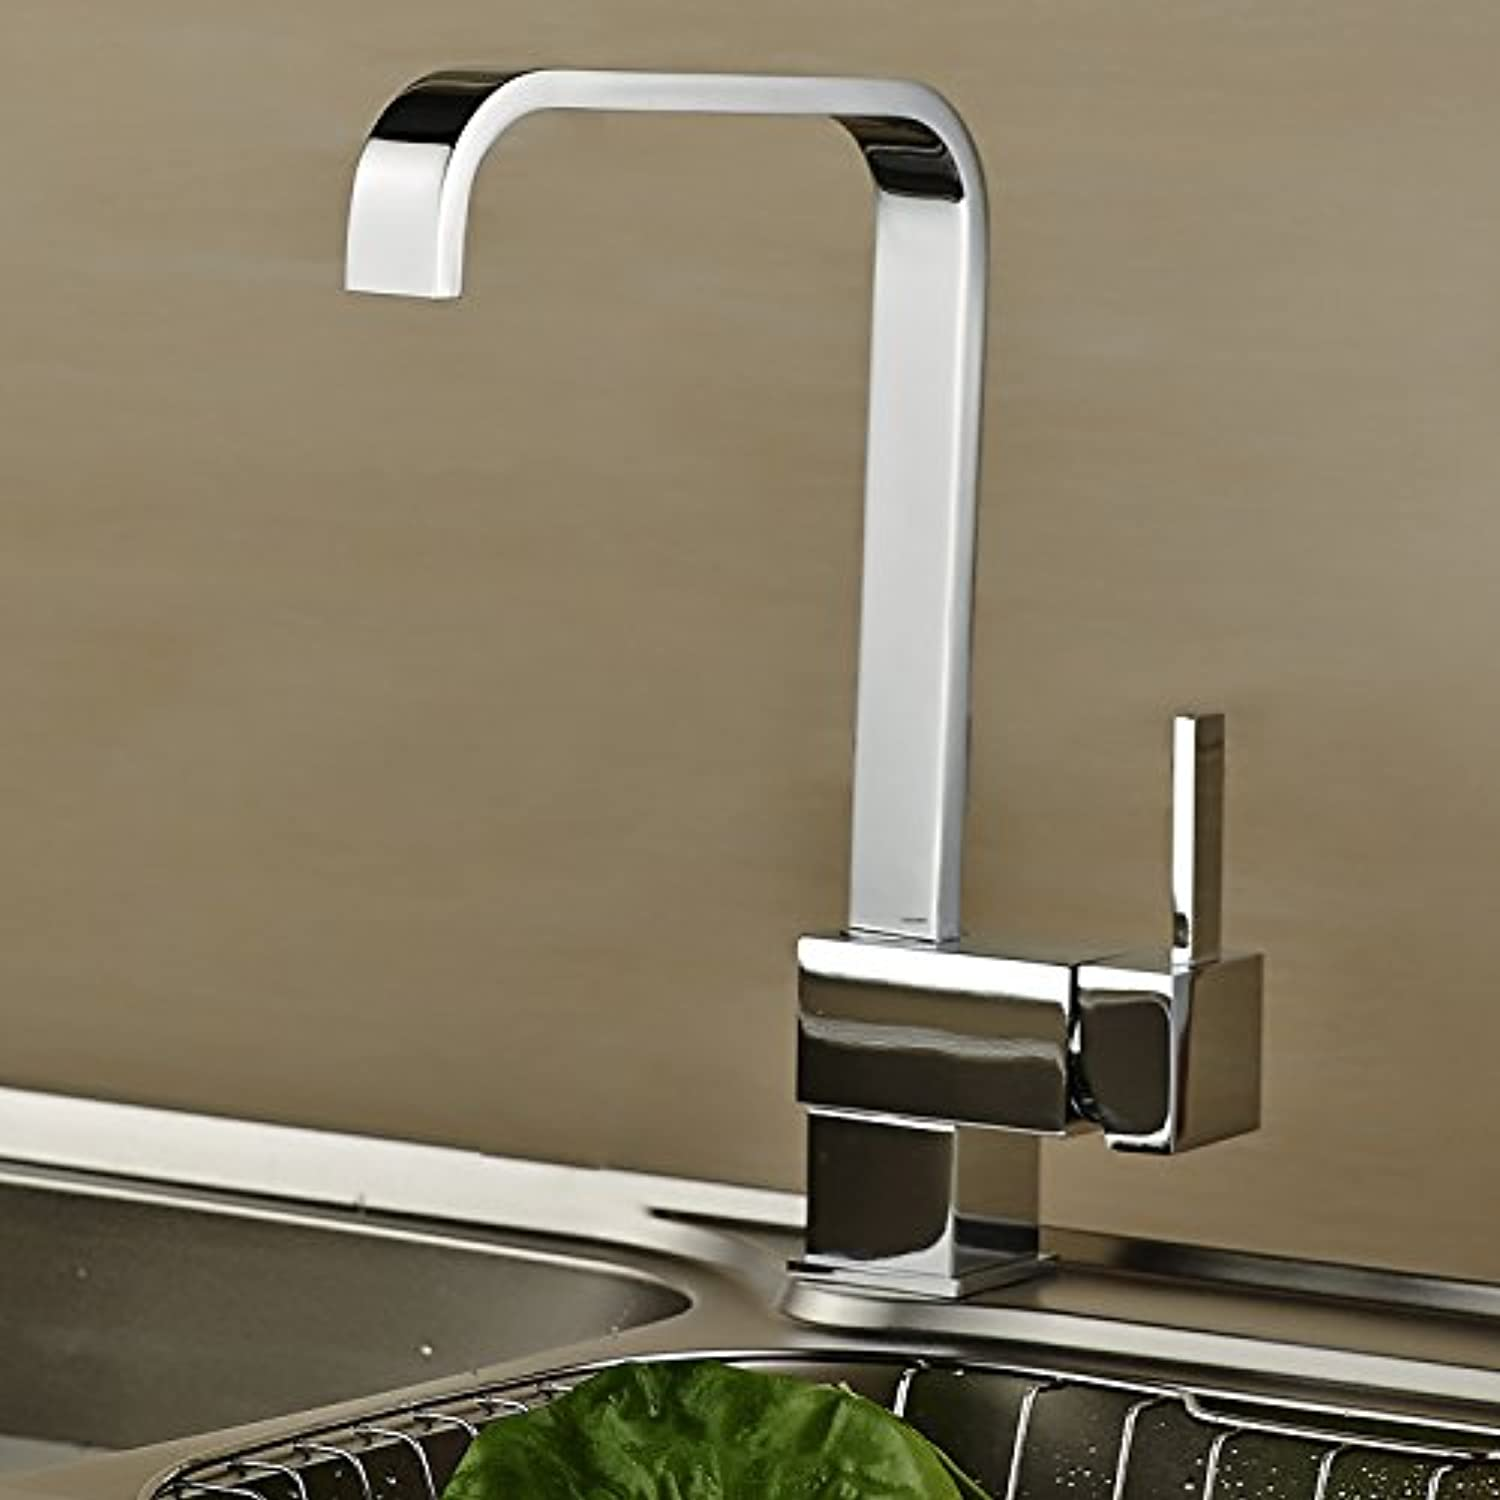 Commercial Single Lever Pull Down Kitchen Sink Faucet Brass Constructed Polished Kitchen Faucet Copper Kitchen Faucet Four Square Seven Word Dishwashing Sink Sink